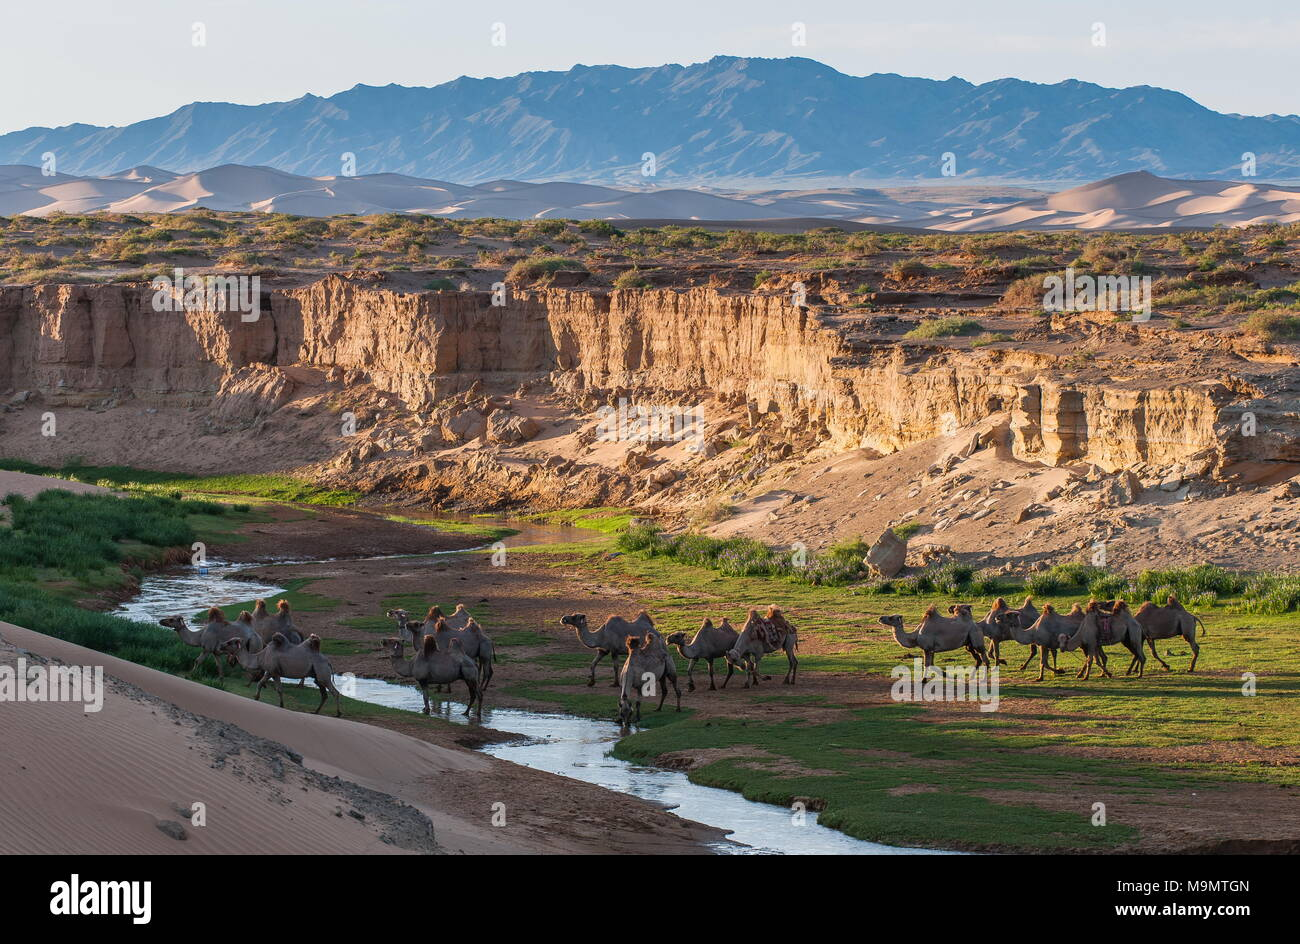 Flock of camels (Camelidae) drinking at a creek, Gobi desert, Mongolia - Stock Image